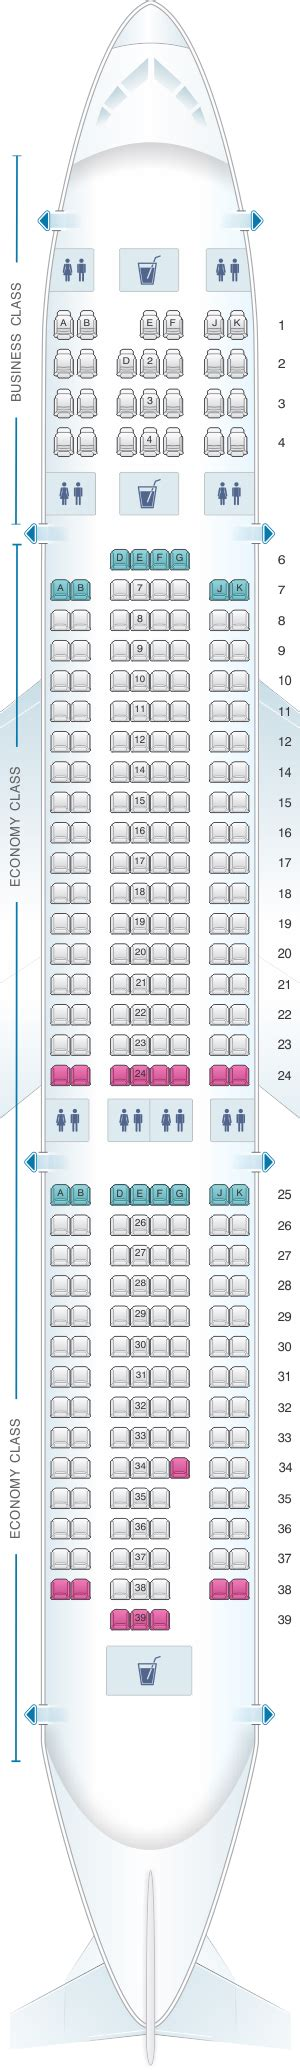 emirates seat map mapa de asientos emirates airbus a330 200 two class